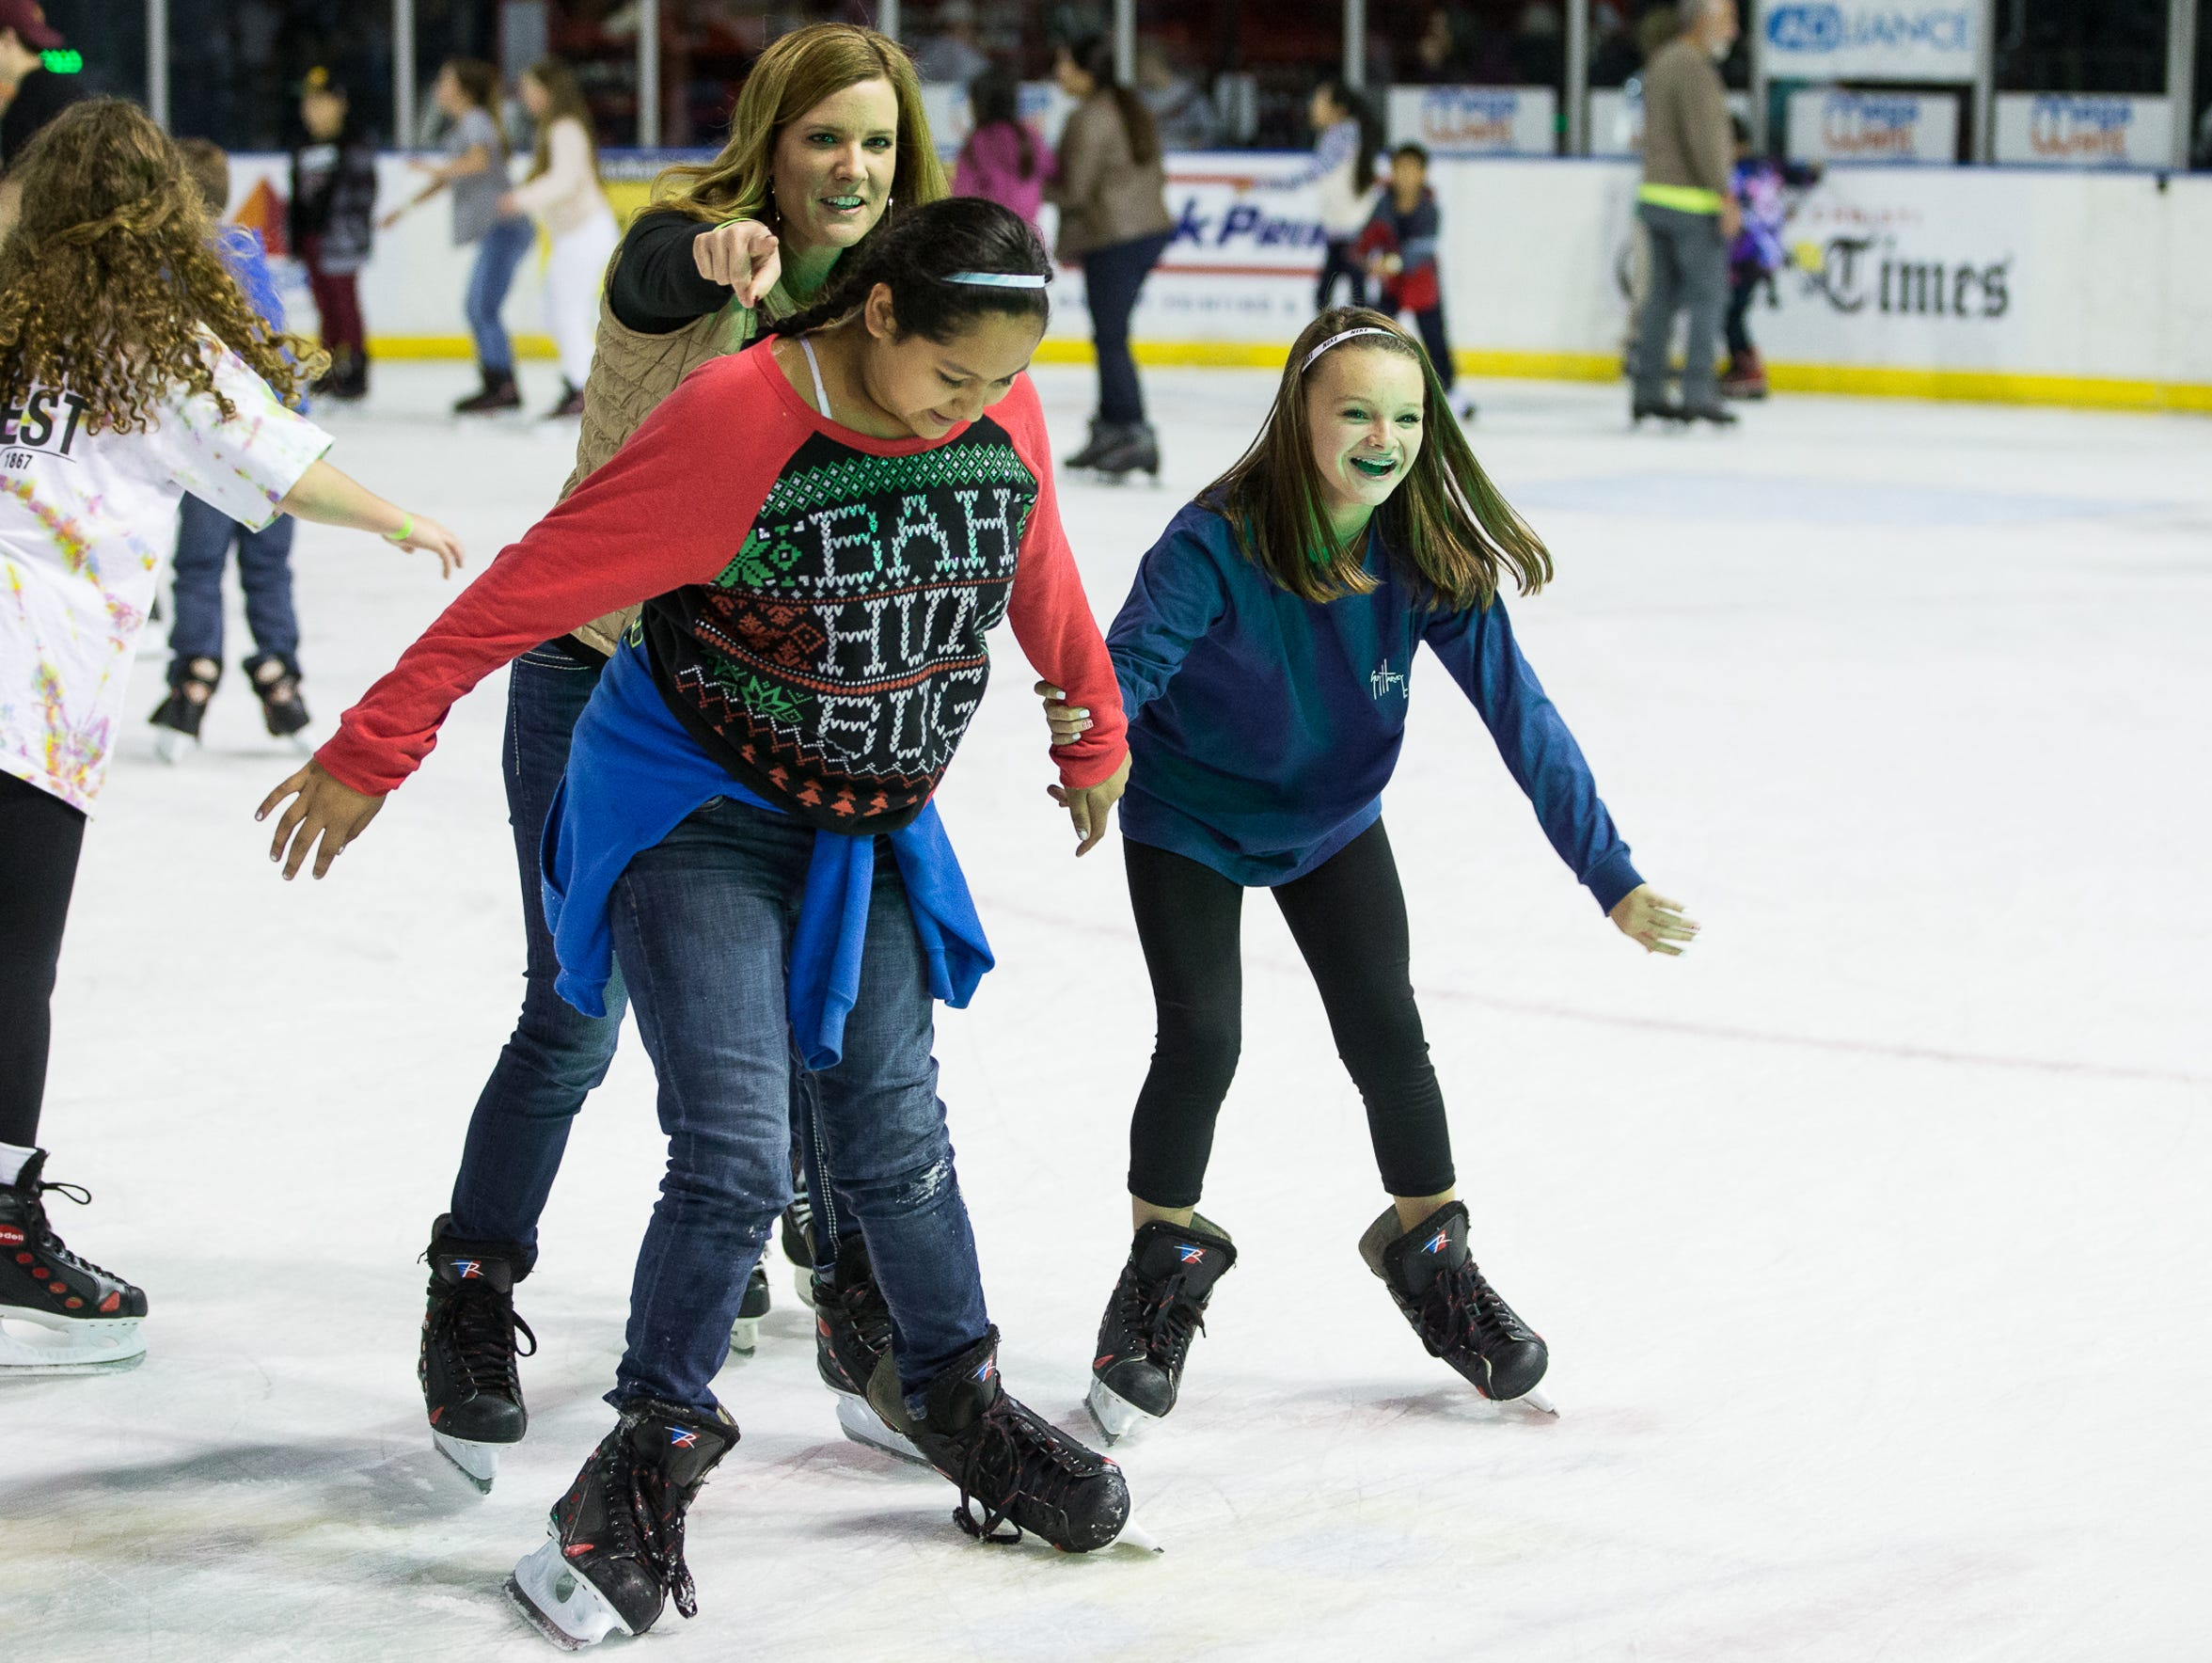 People skate on the ice during American Bank Center's